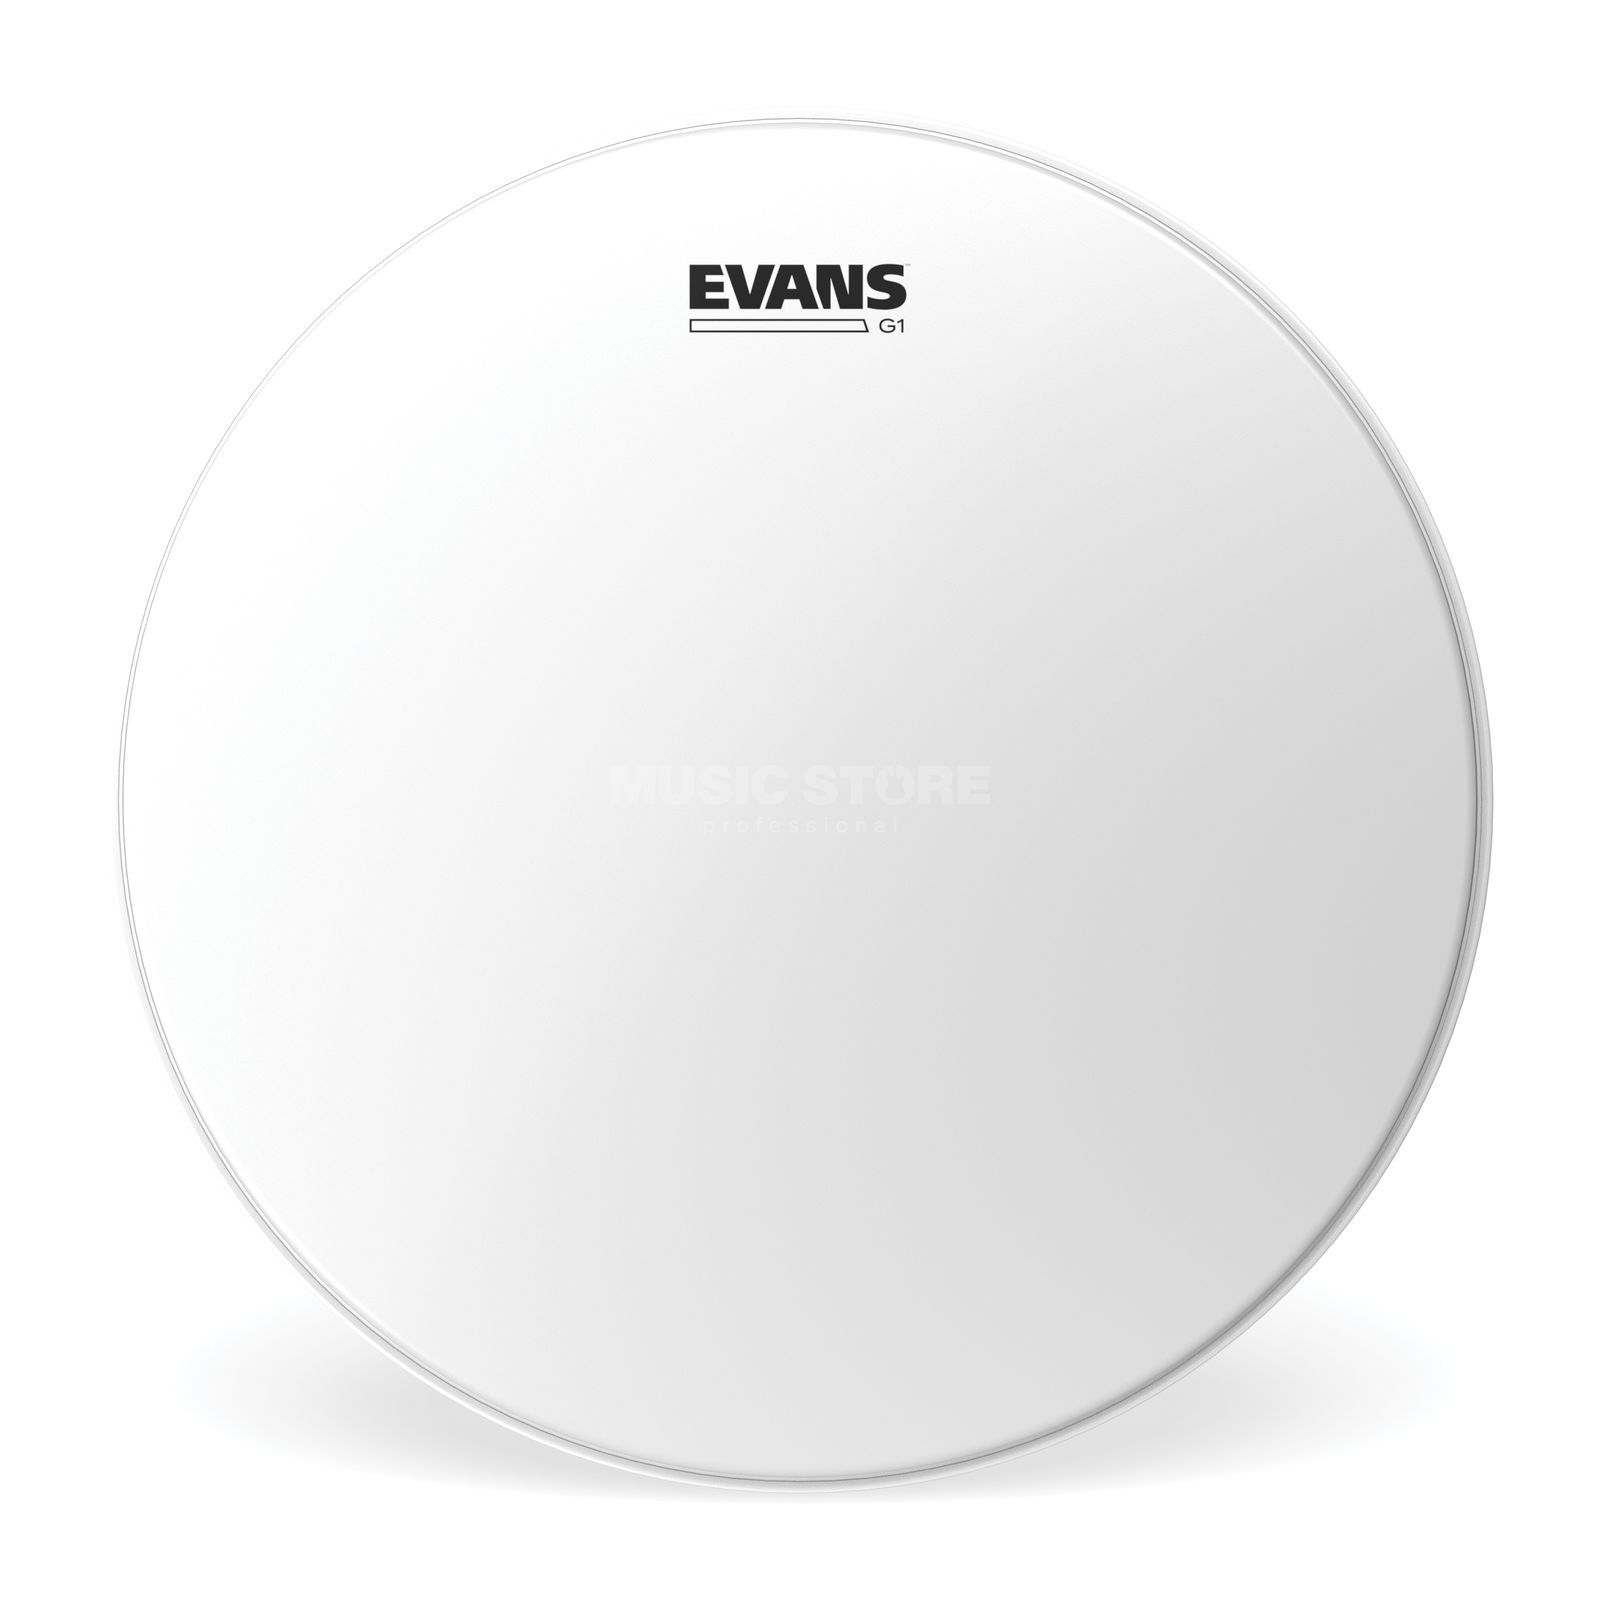 "Evans G1 Coated 22"", BD22G1CW, BassDrum Batter Immagine prodotto"